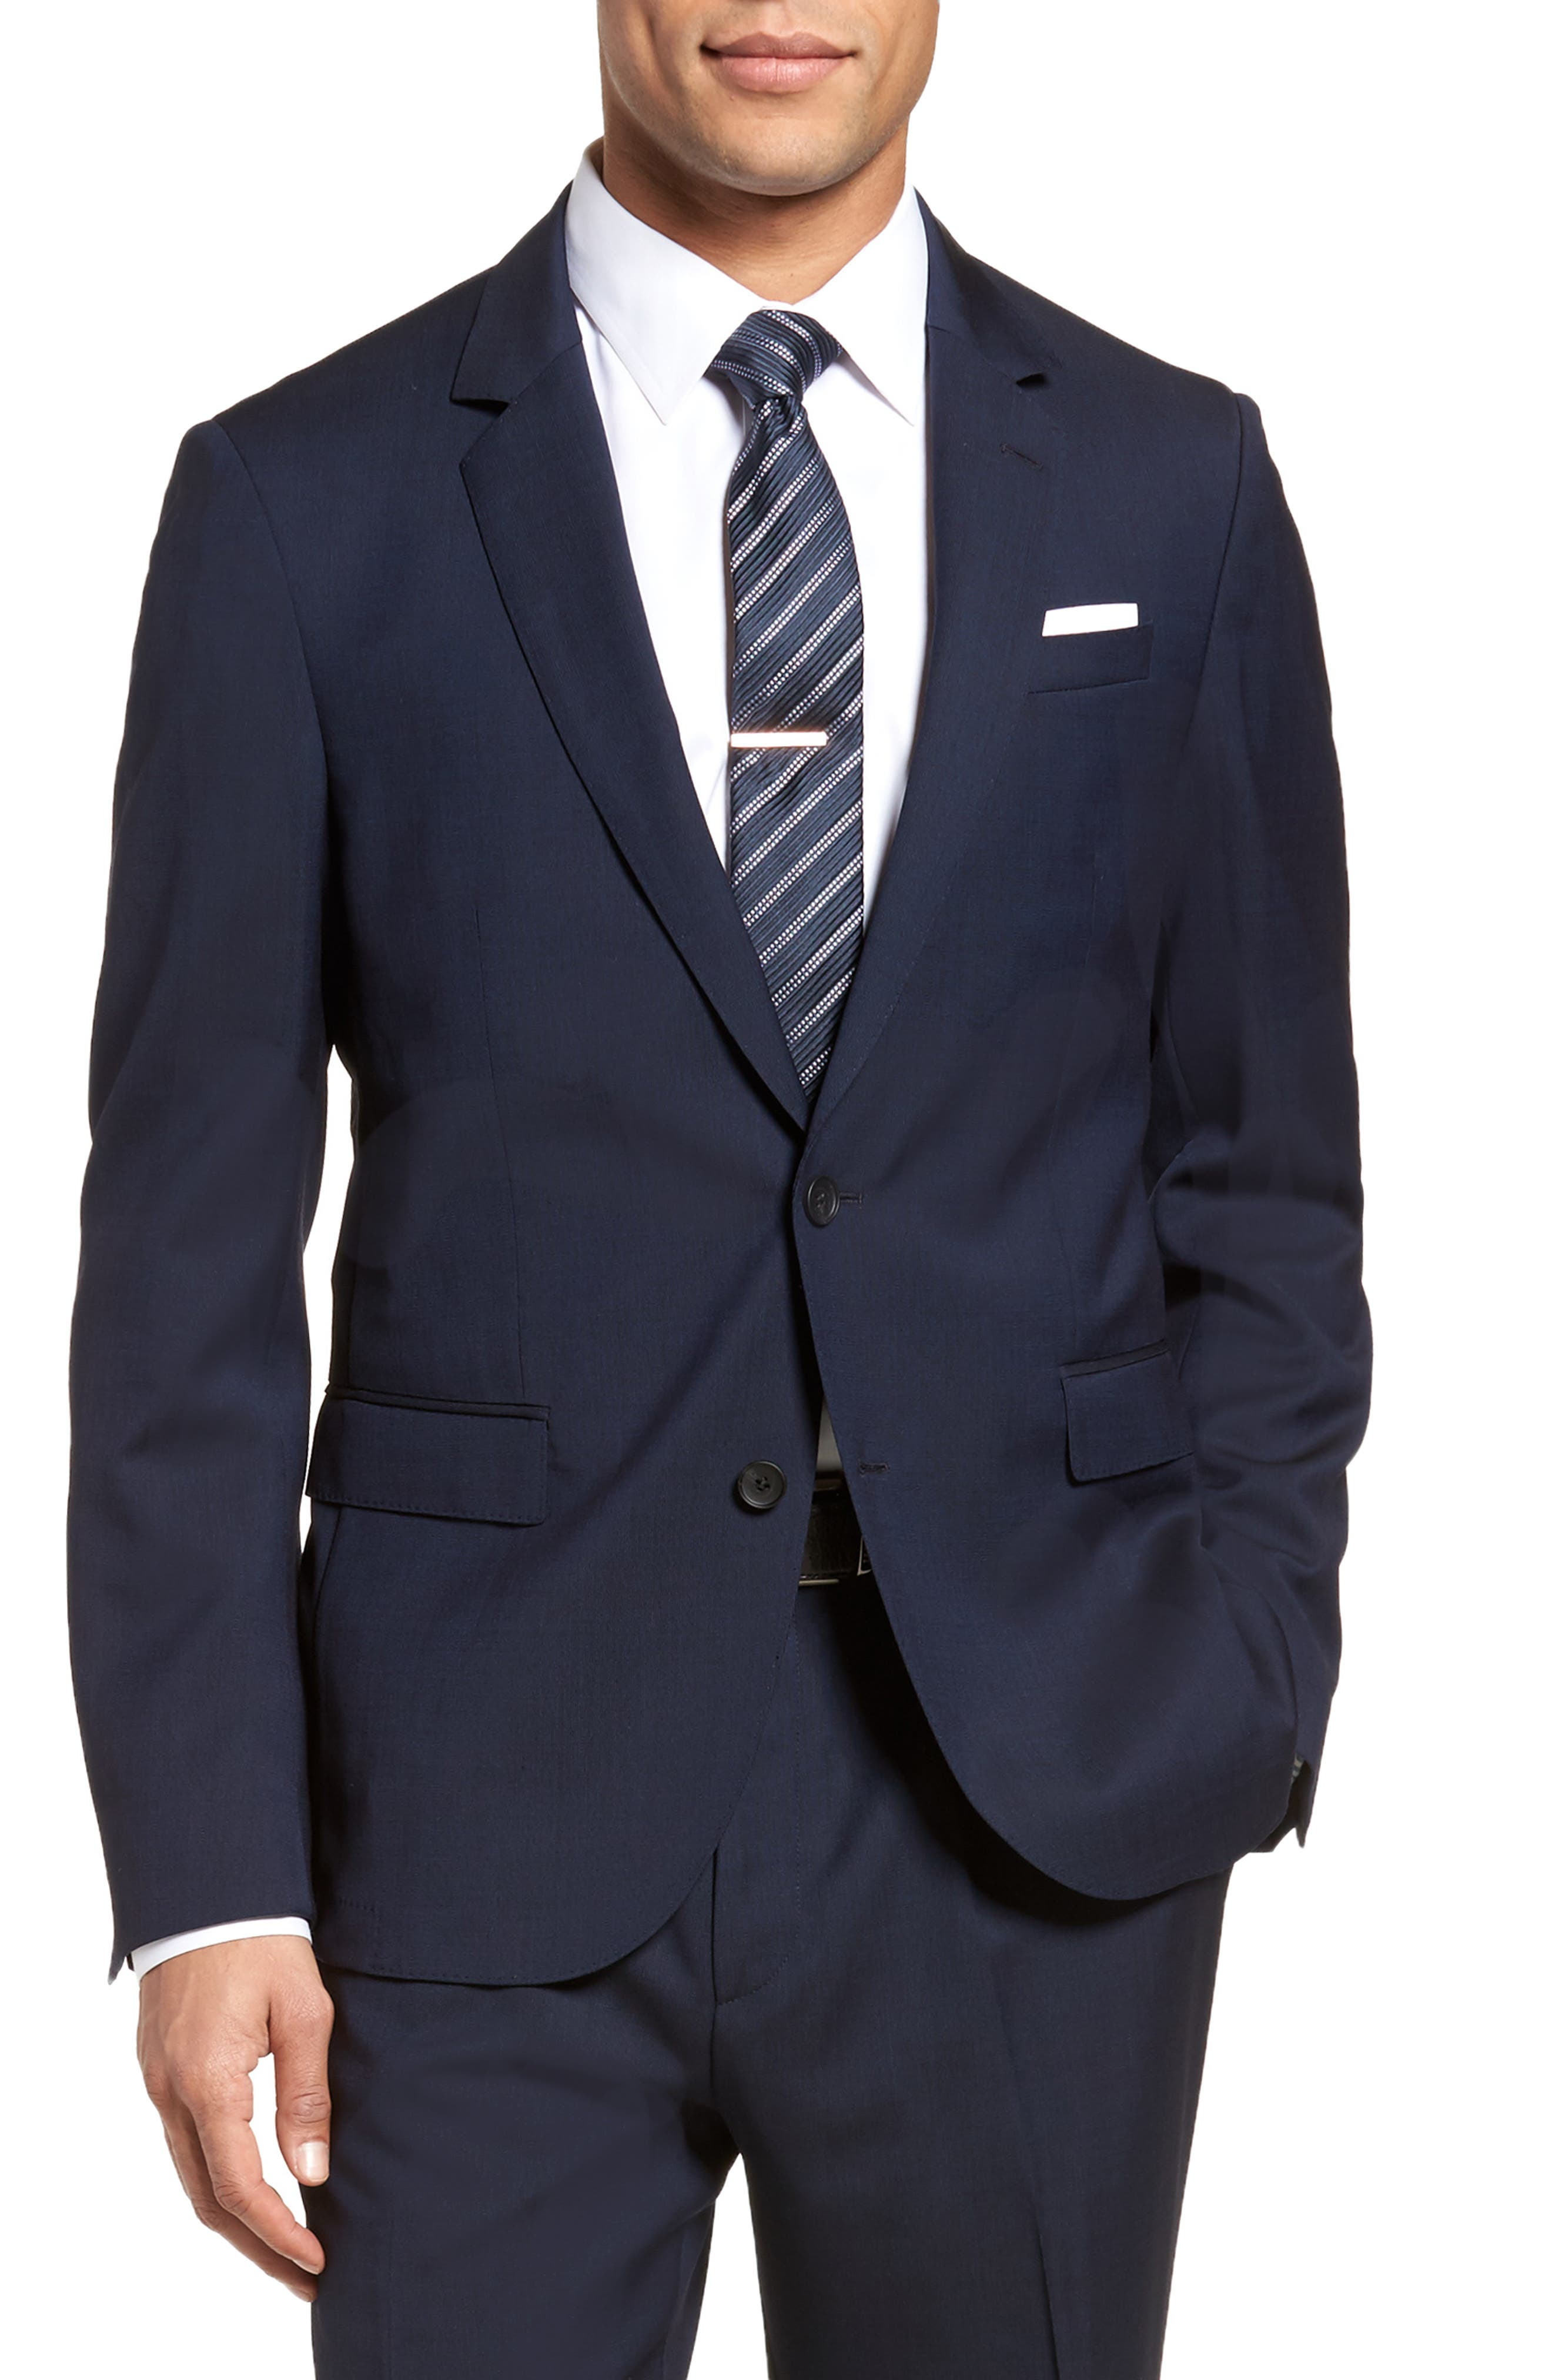 Nylen/Perry Trim Fit Solid Wool Suit,                             Alternate thumbnail 6, color,